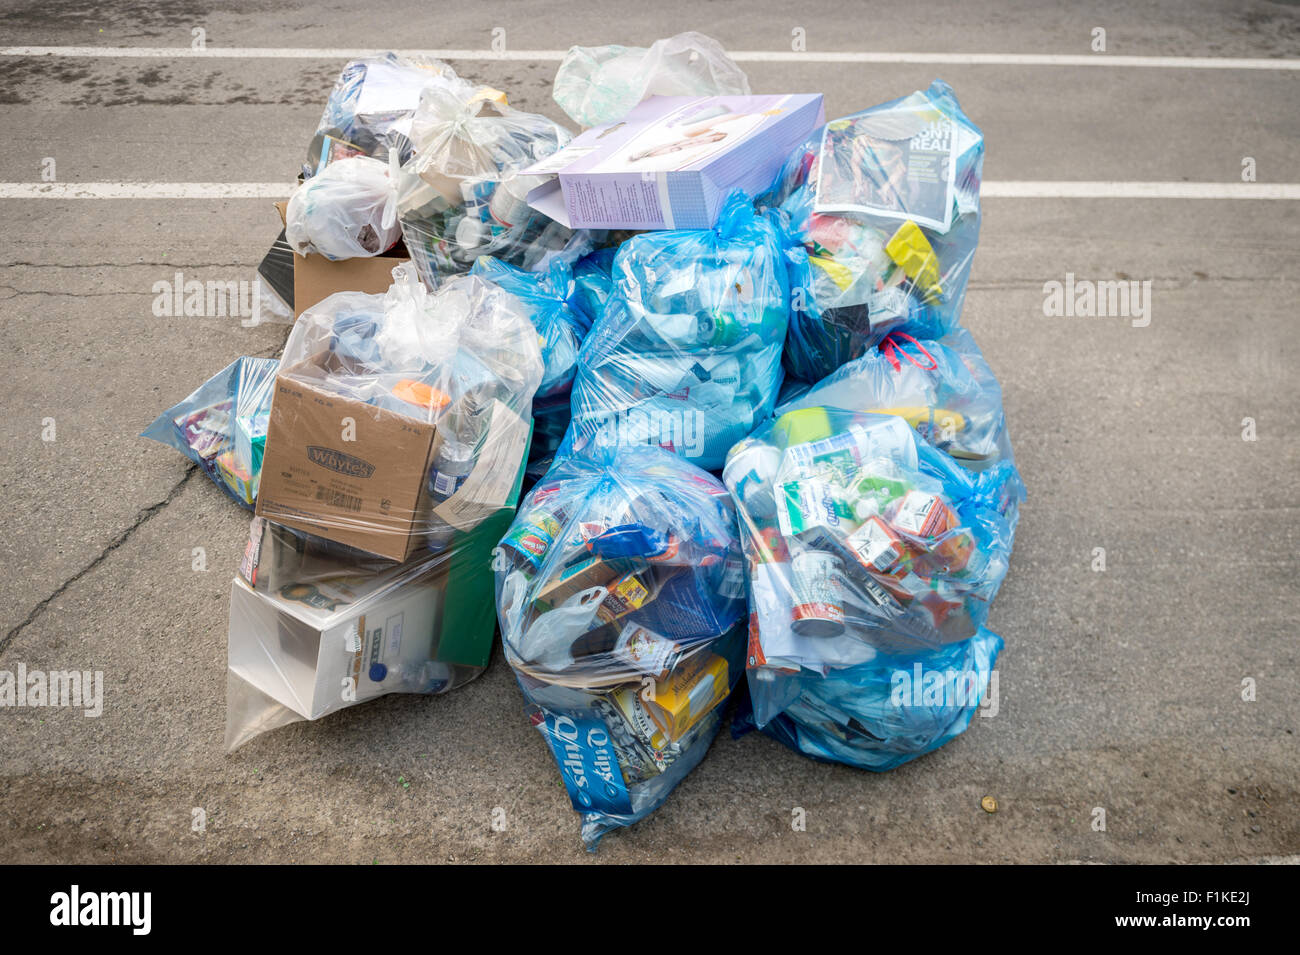 Blue plastic Recycling Rubbish bags put out for recycling on the street, waiting for Rubbish collection. - Stock Image